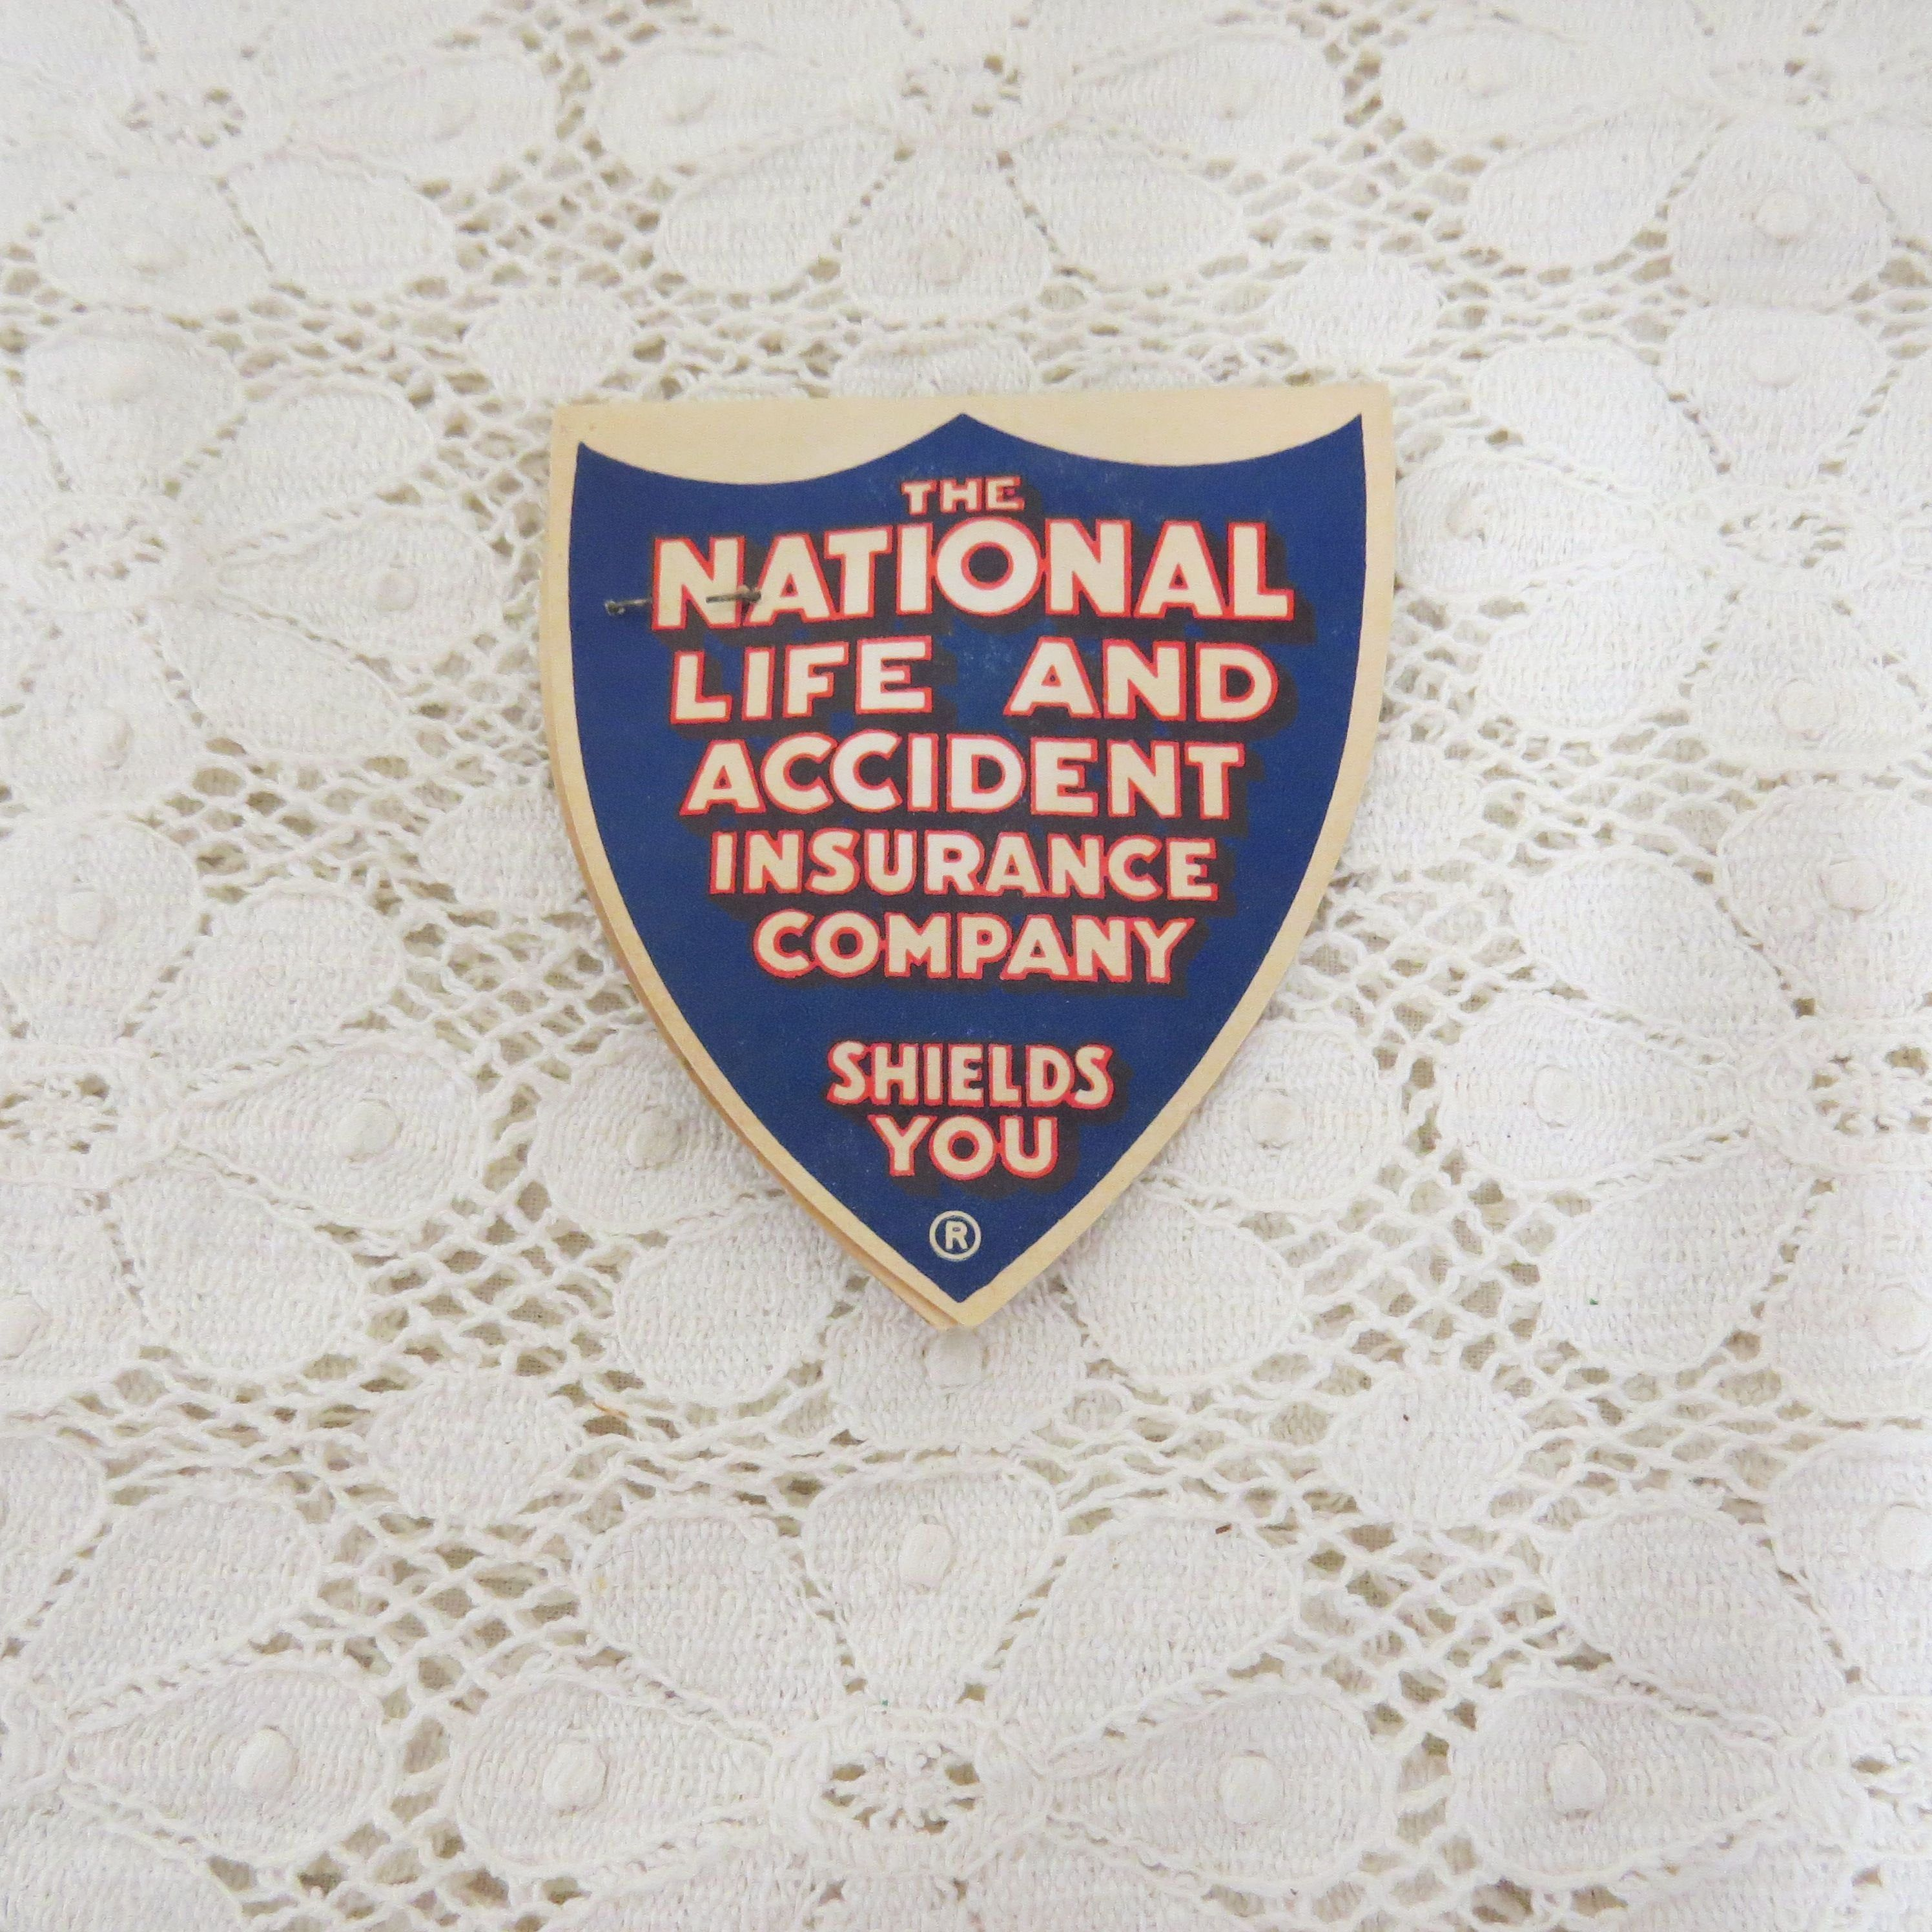 Vintage Advertising Needle Case National Life And Accident